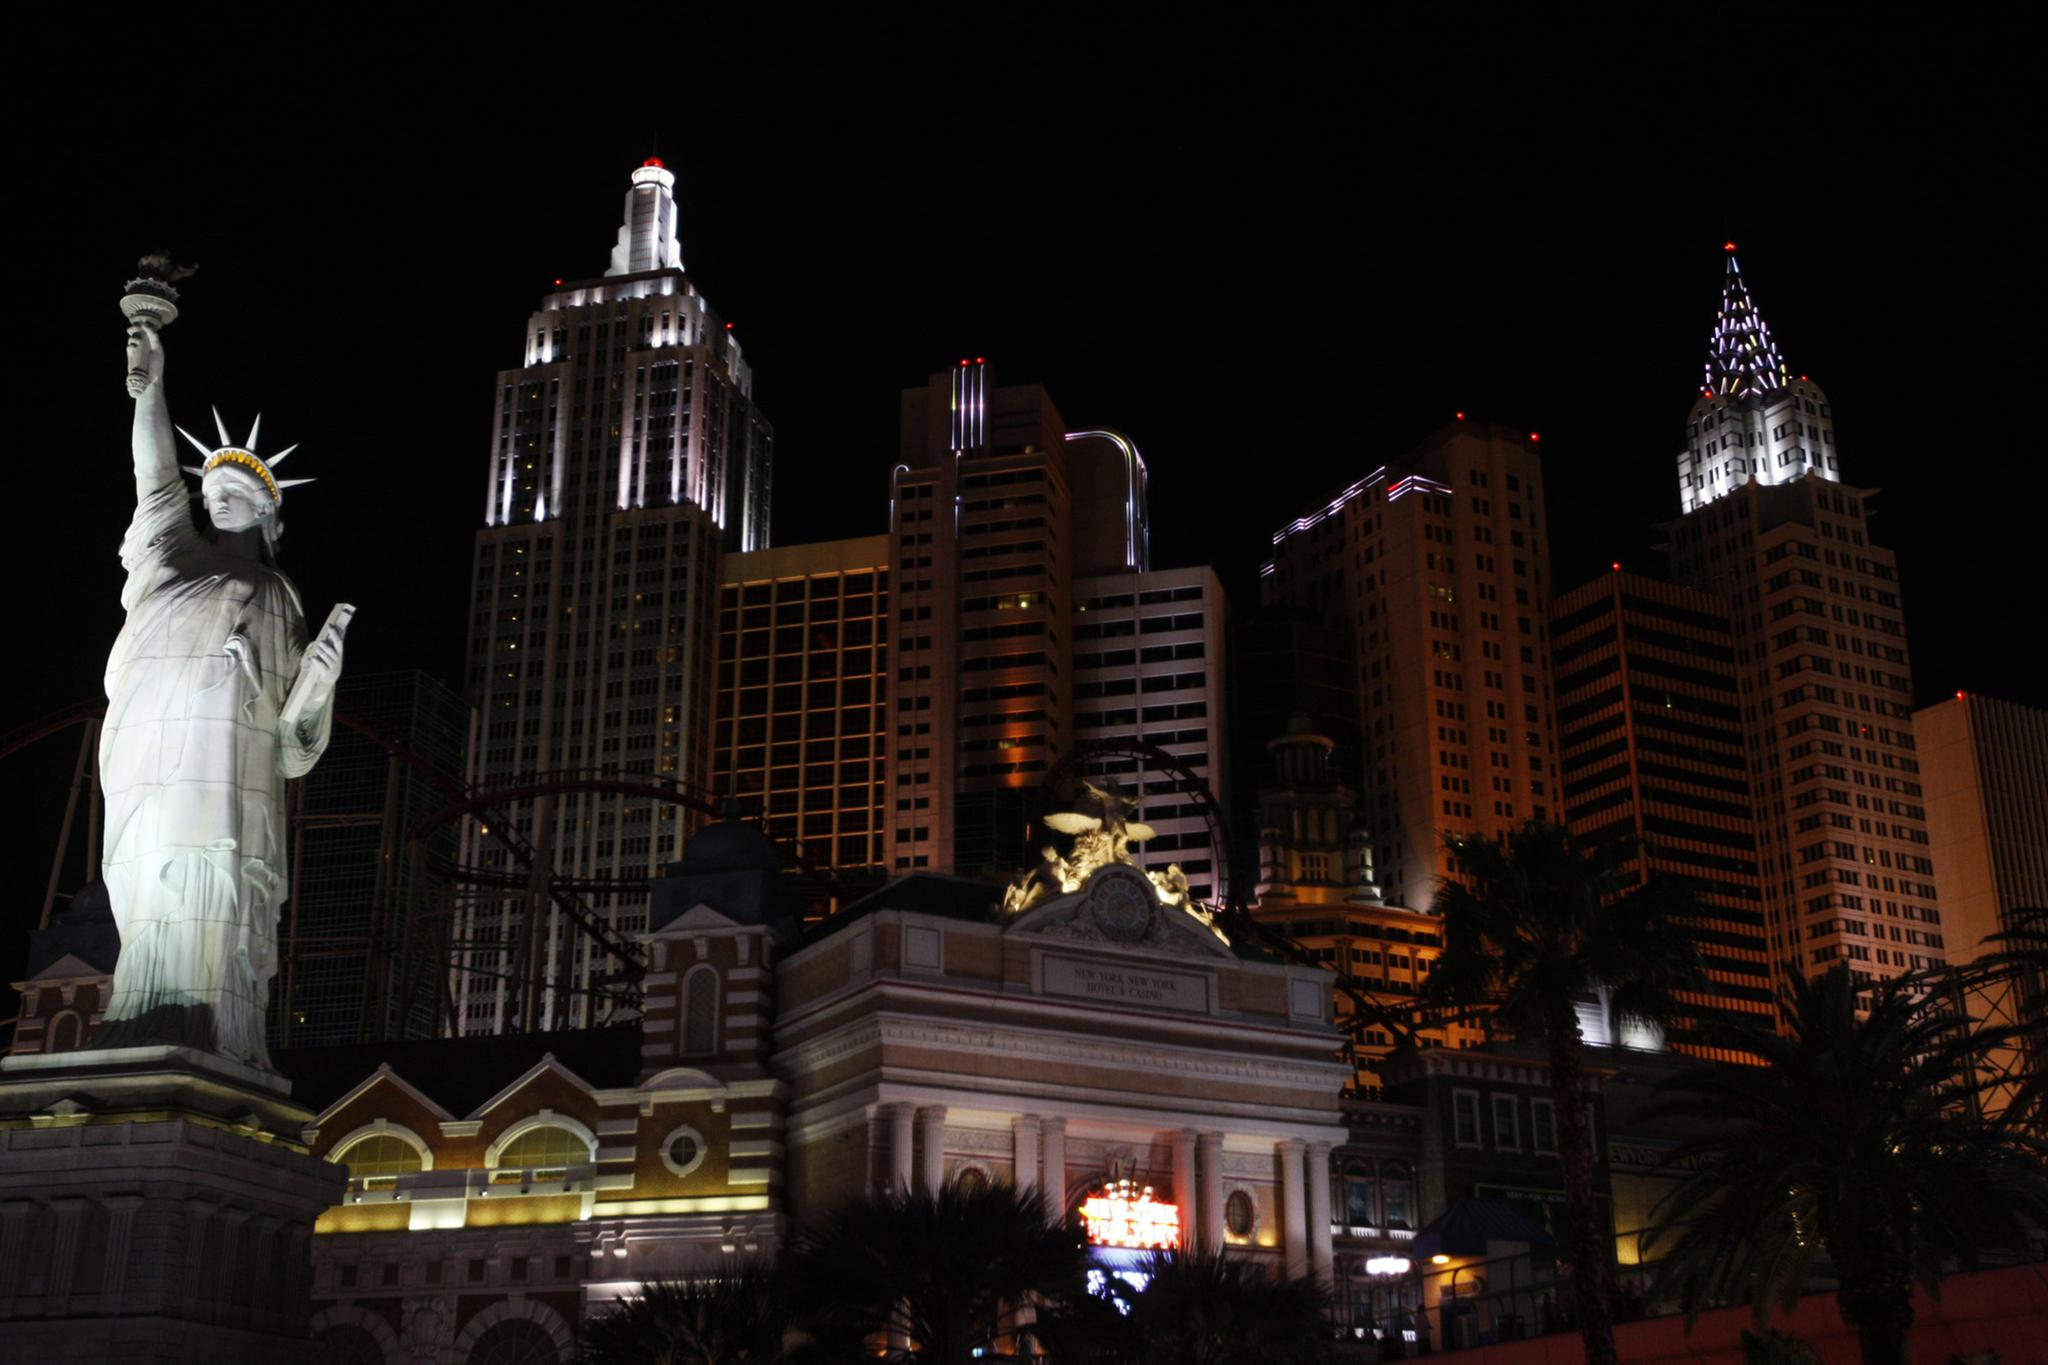 5 of the most daring casino robberies